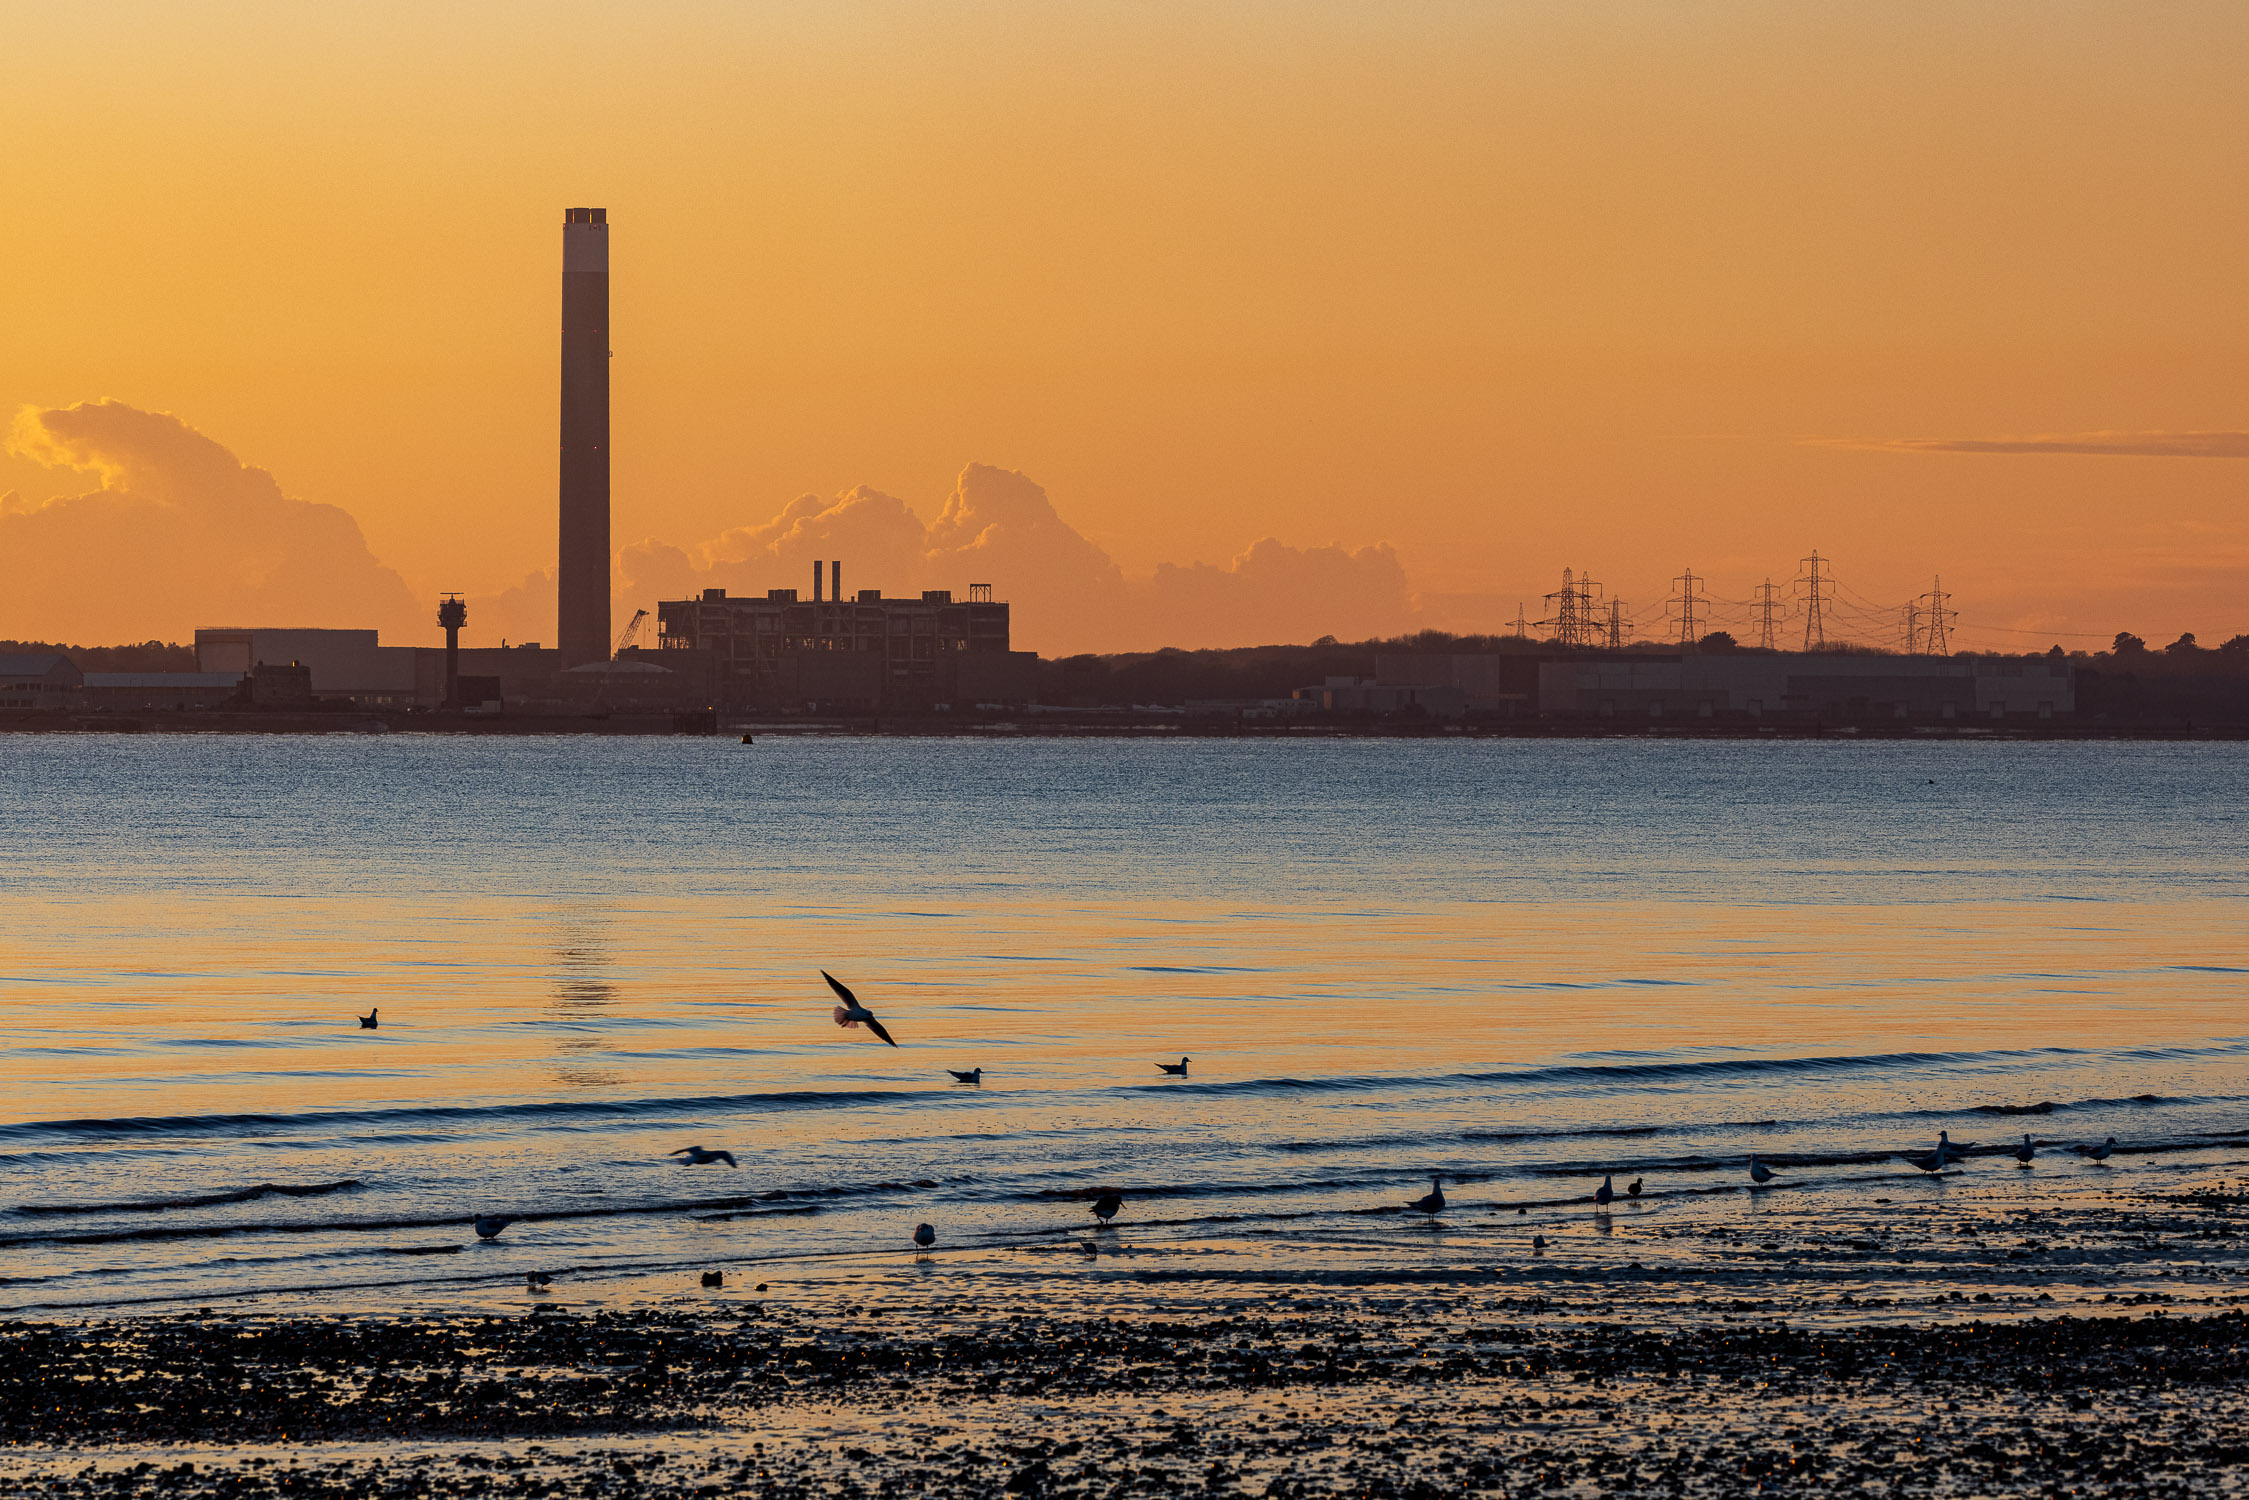 Sunset behind the Fawley Power Station